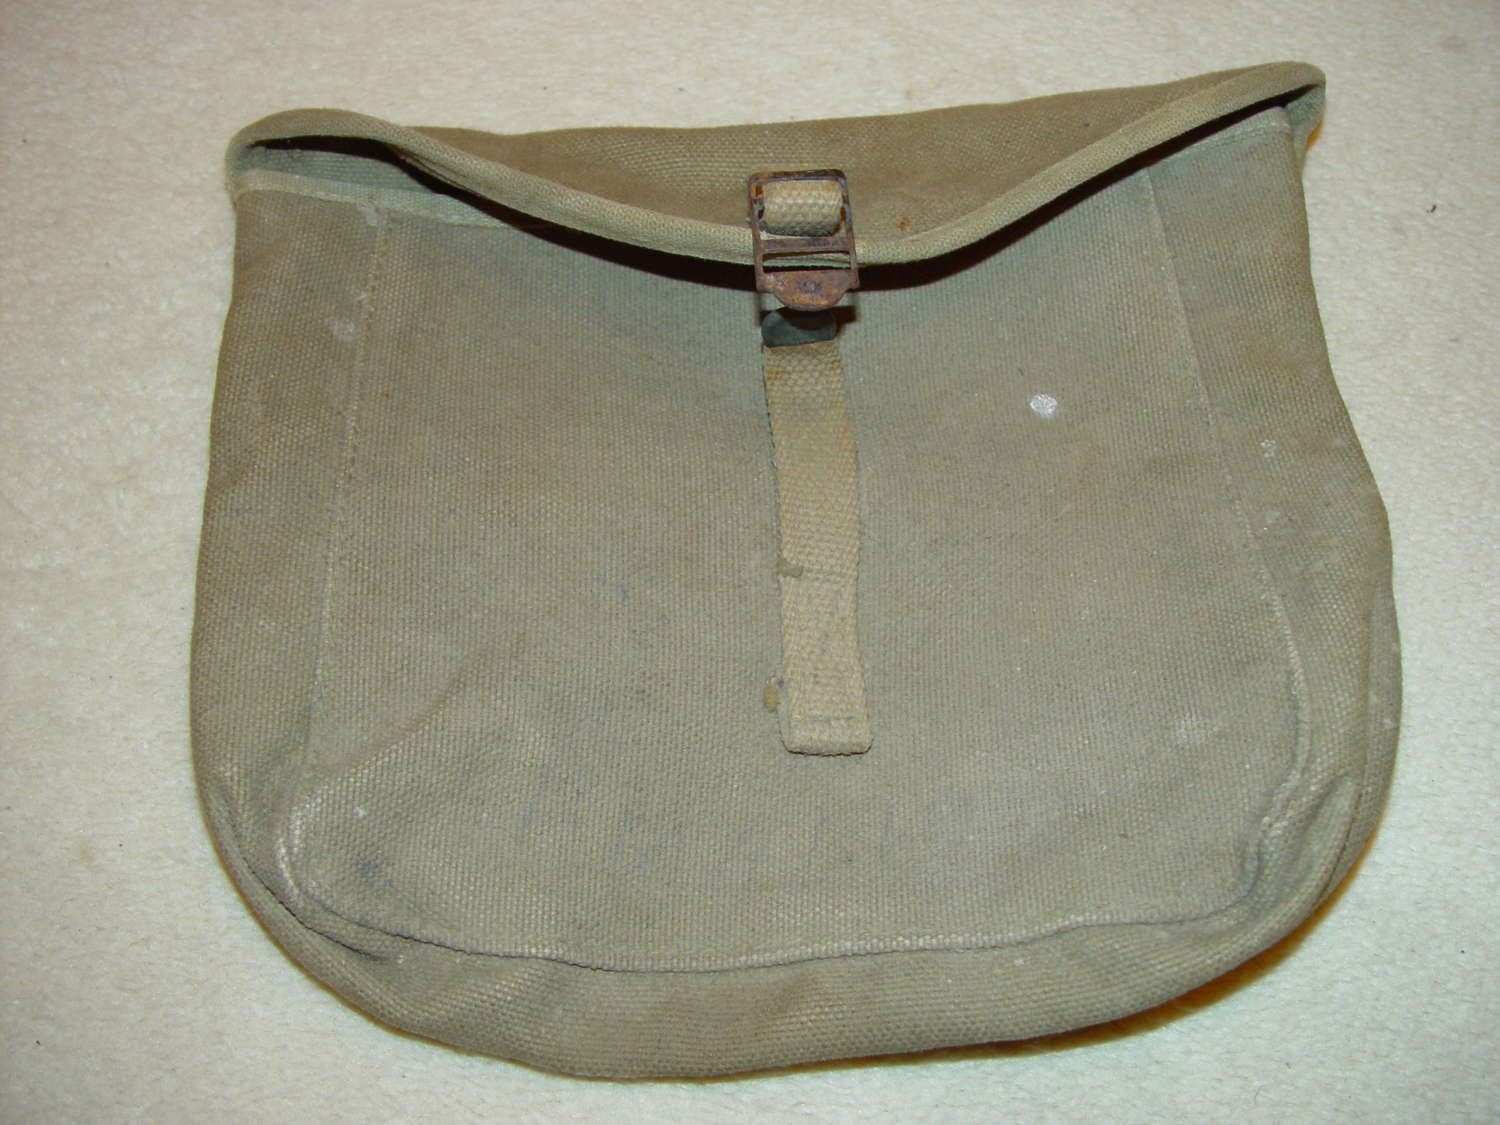 US army mess tin pouch for the M28 haversack